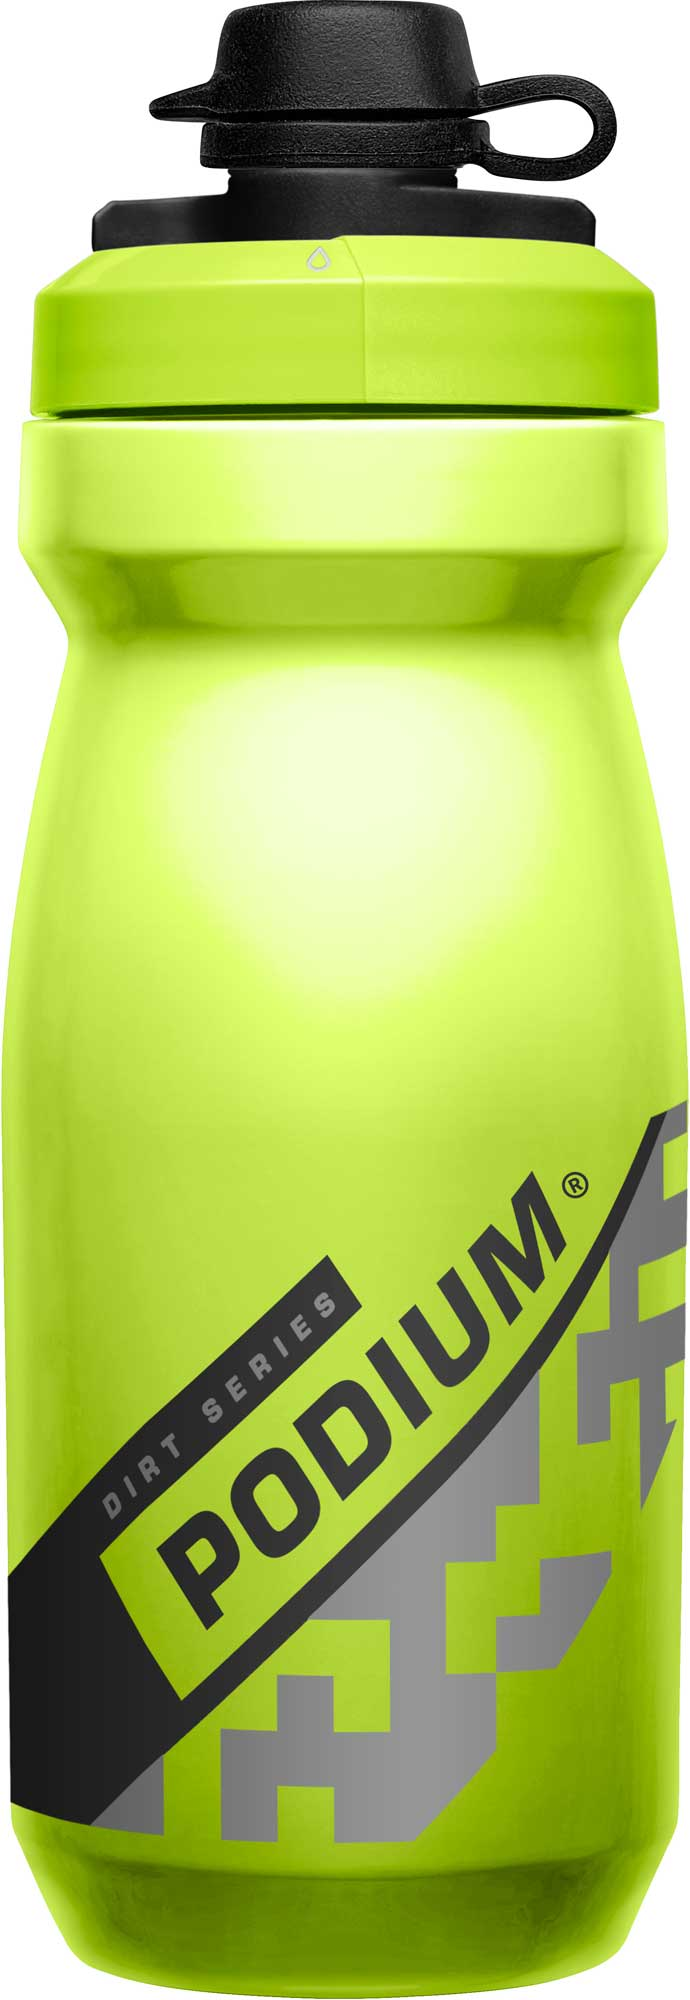 CamelBak Podium Dirt Series Sport & Bike Bottle, 620ml